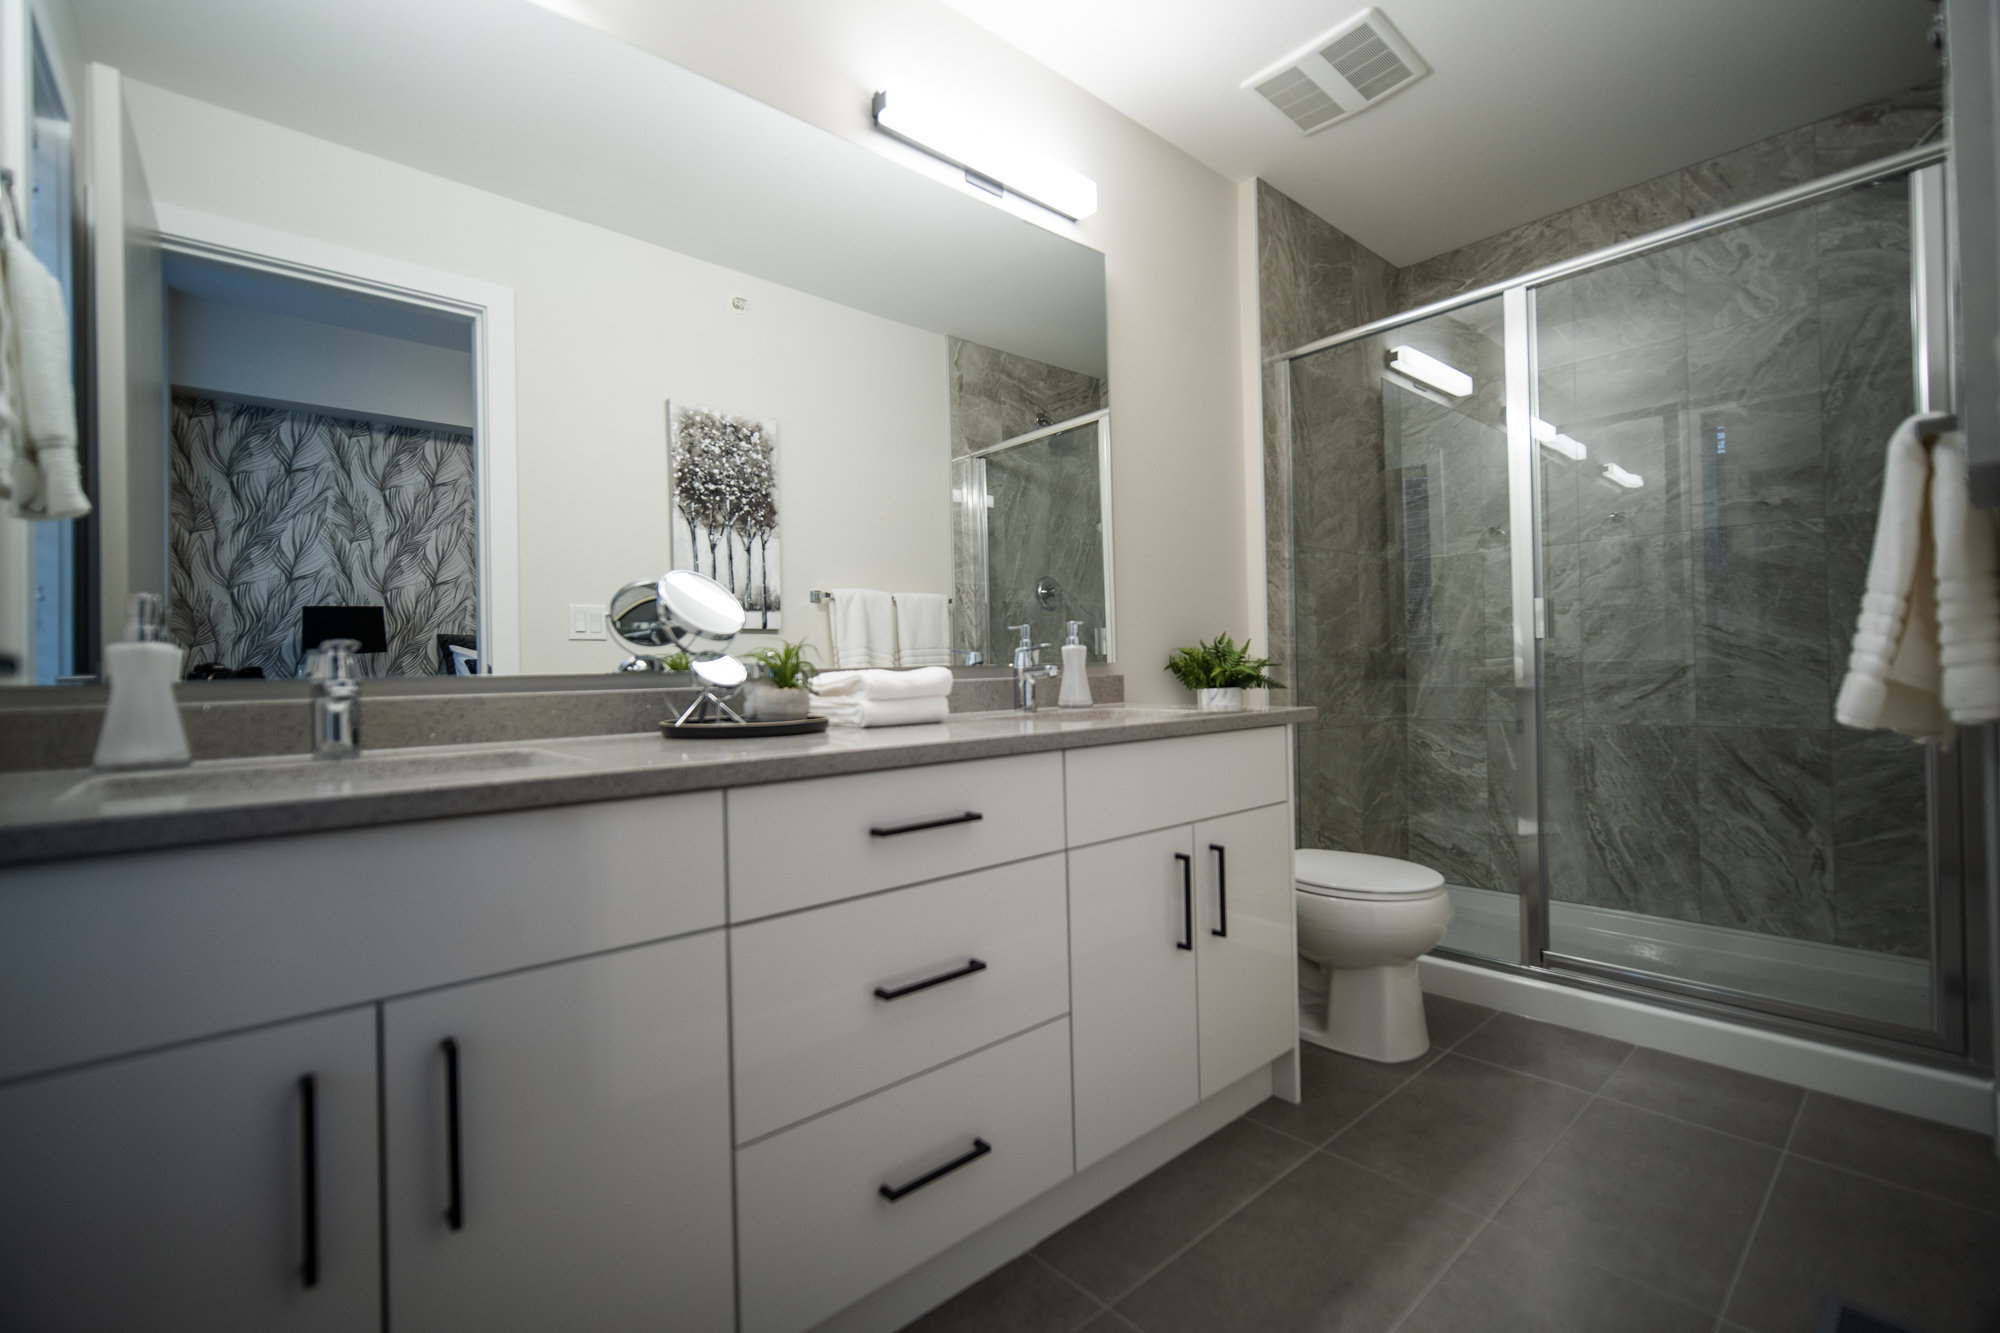 Bathroom - 46150 Thomas Rd, Chilliwack, BC V2R 6B3, Canada!